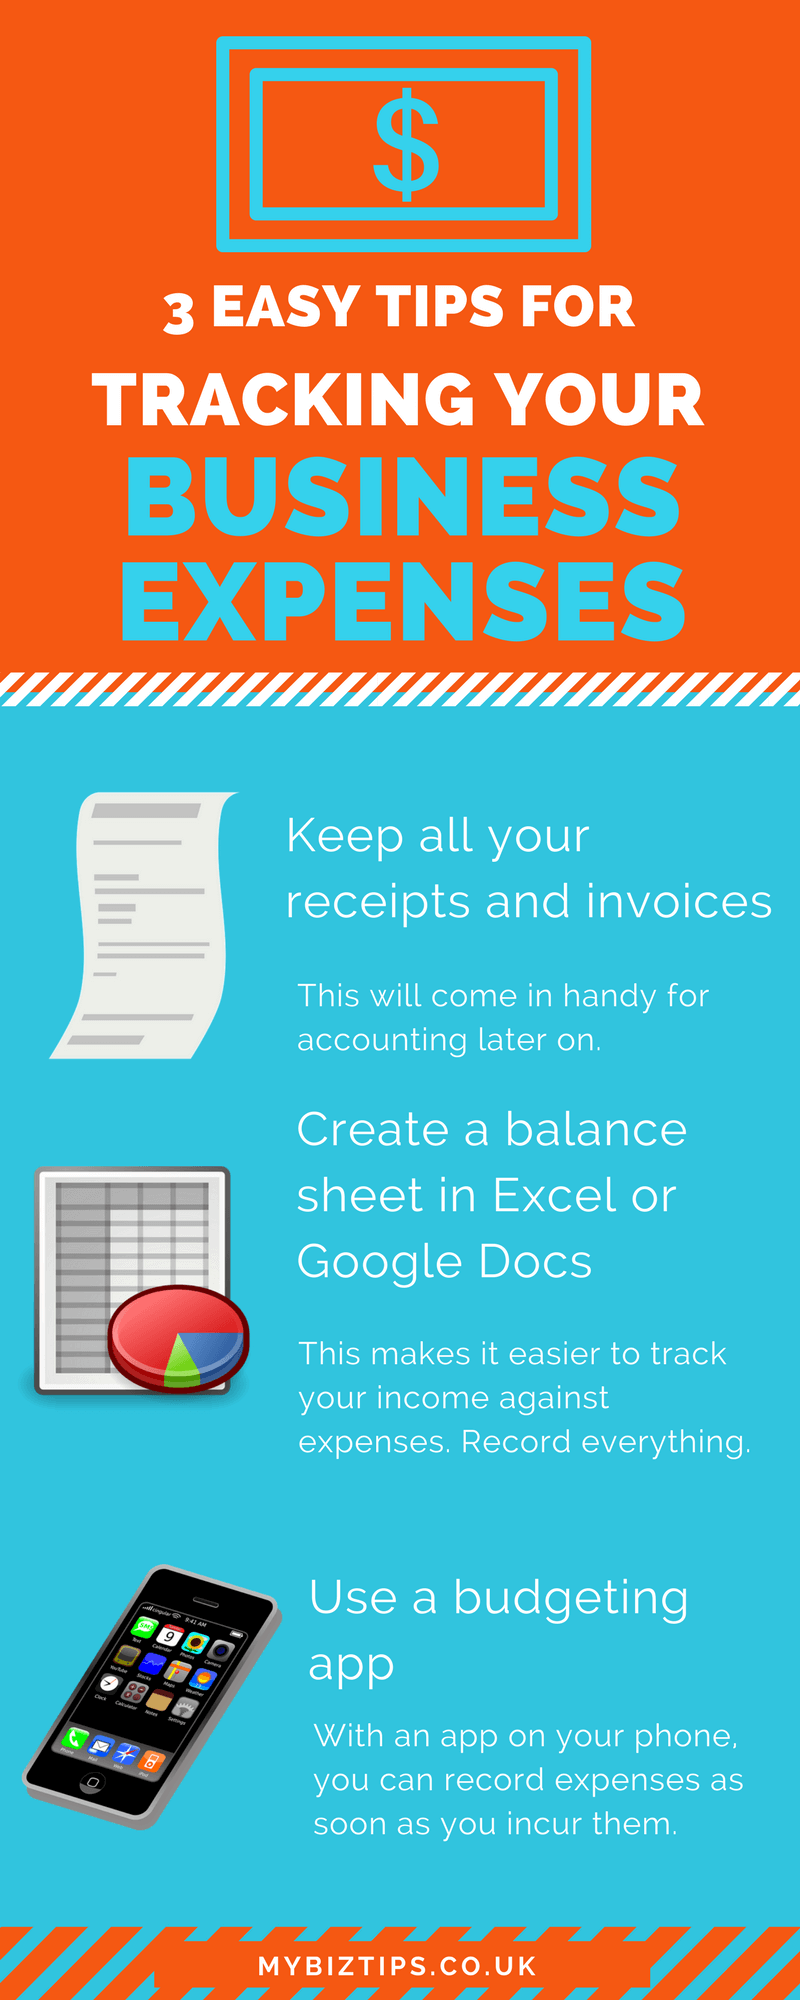 UK small business track expenses